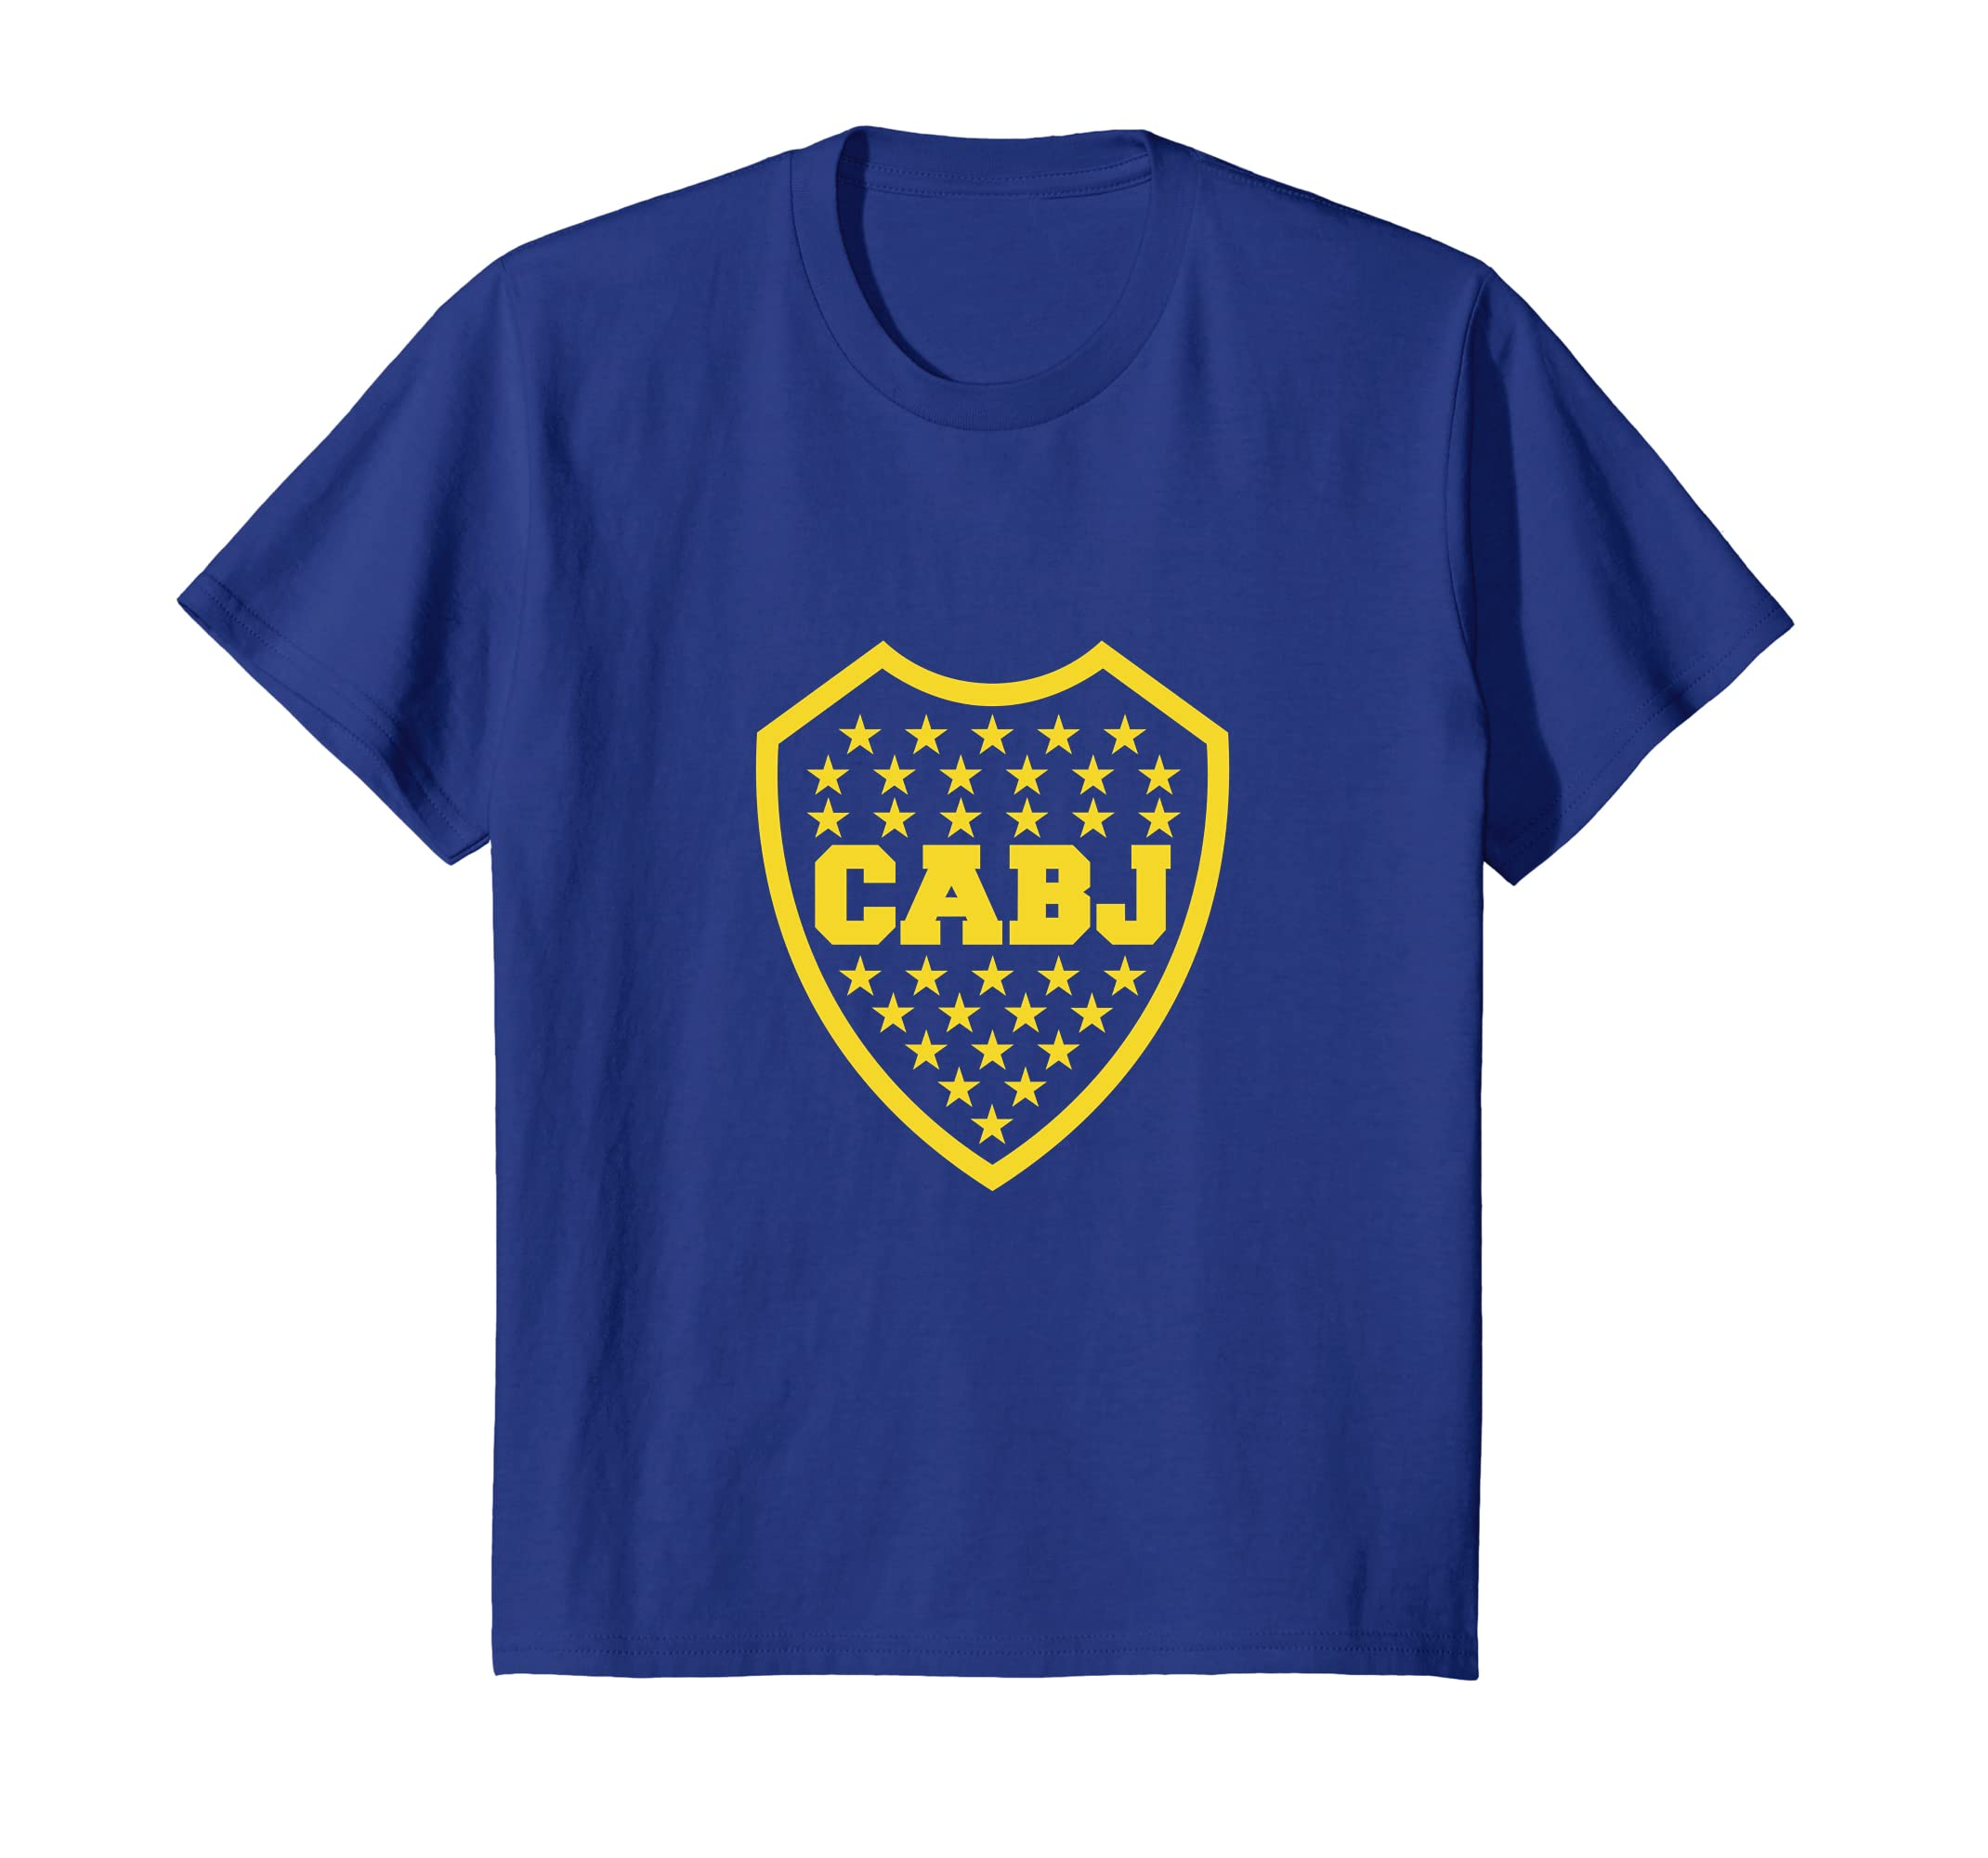 Amazon.com: Club Atletico Boca Juniors Argentina Camiseta Jersey TShirt: Clothing